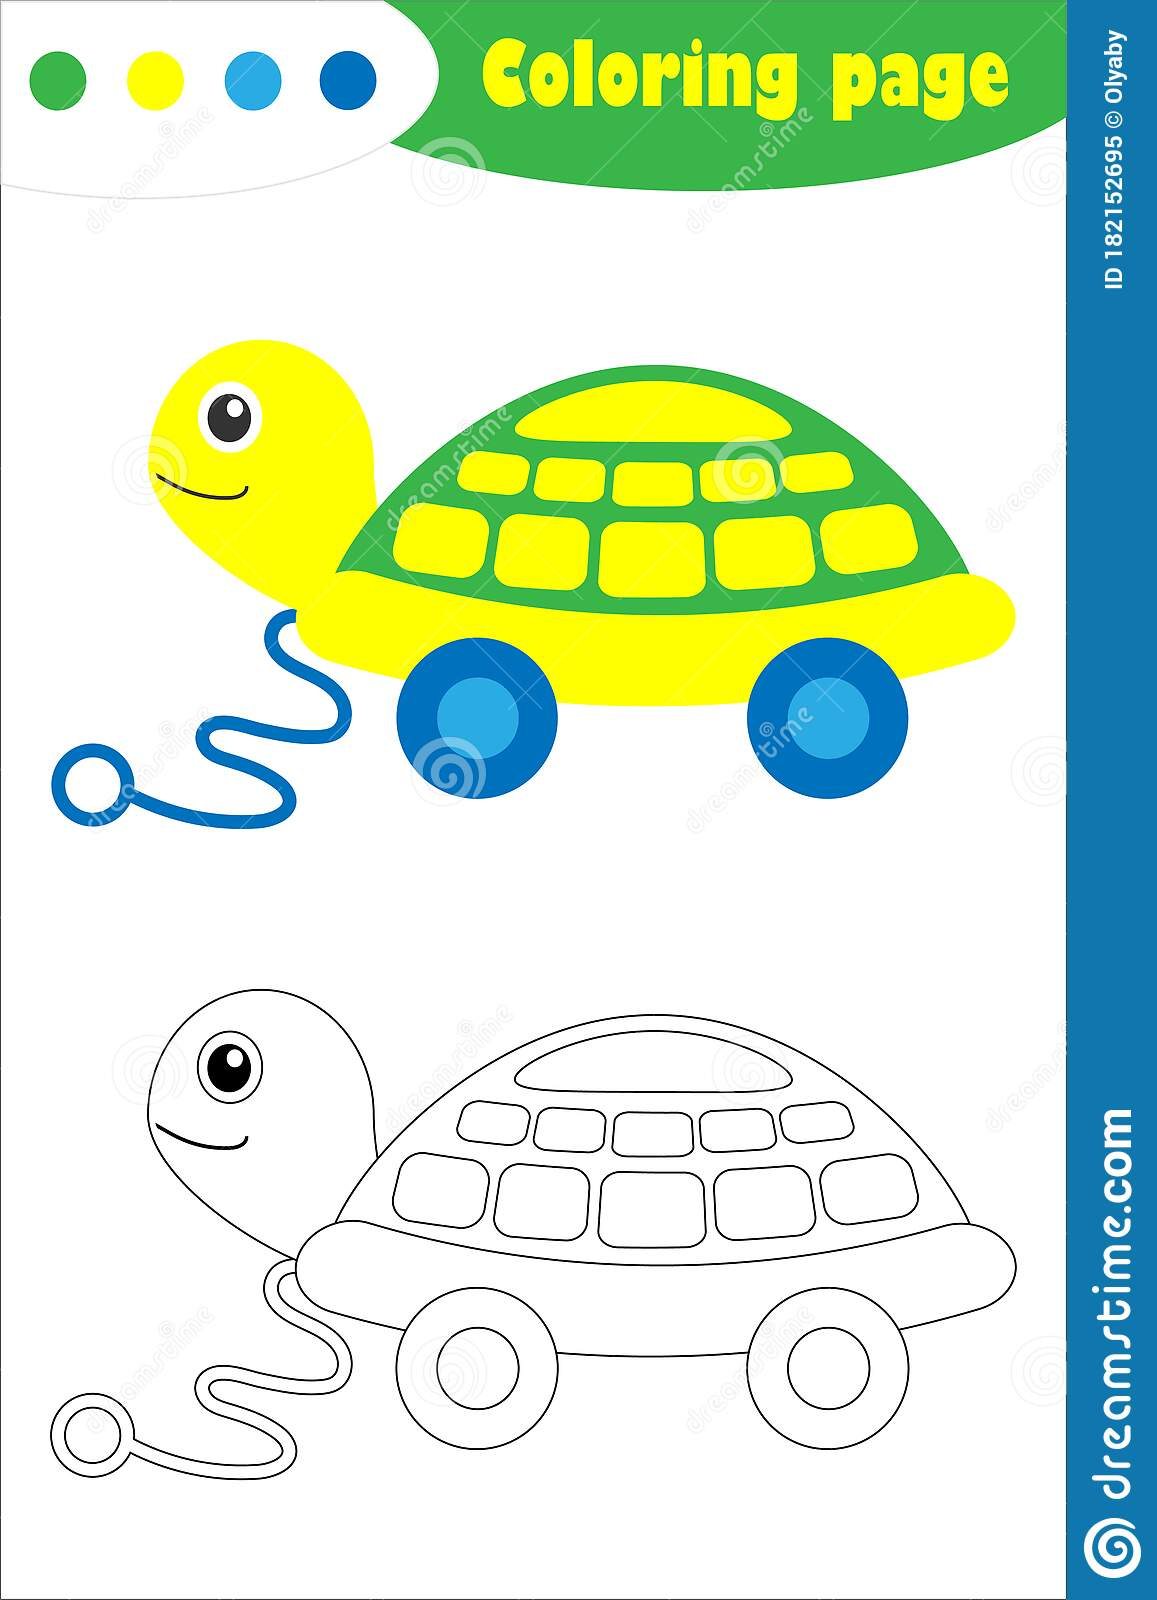 Toy Turtle In Cartoon Style Coloring Page Education